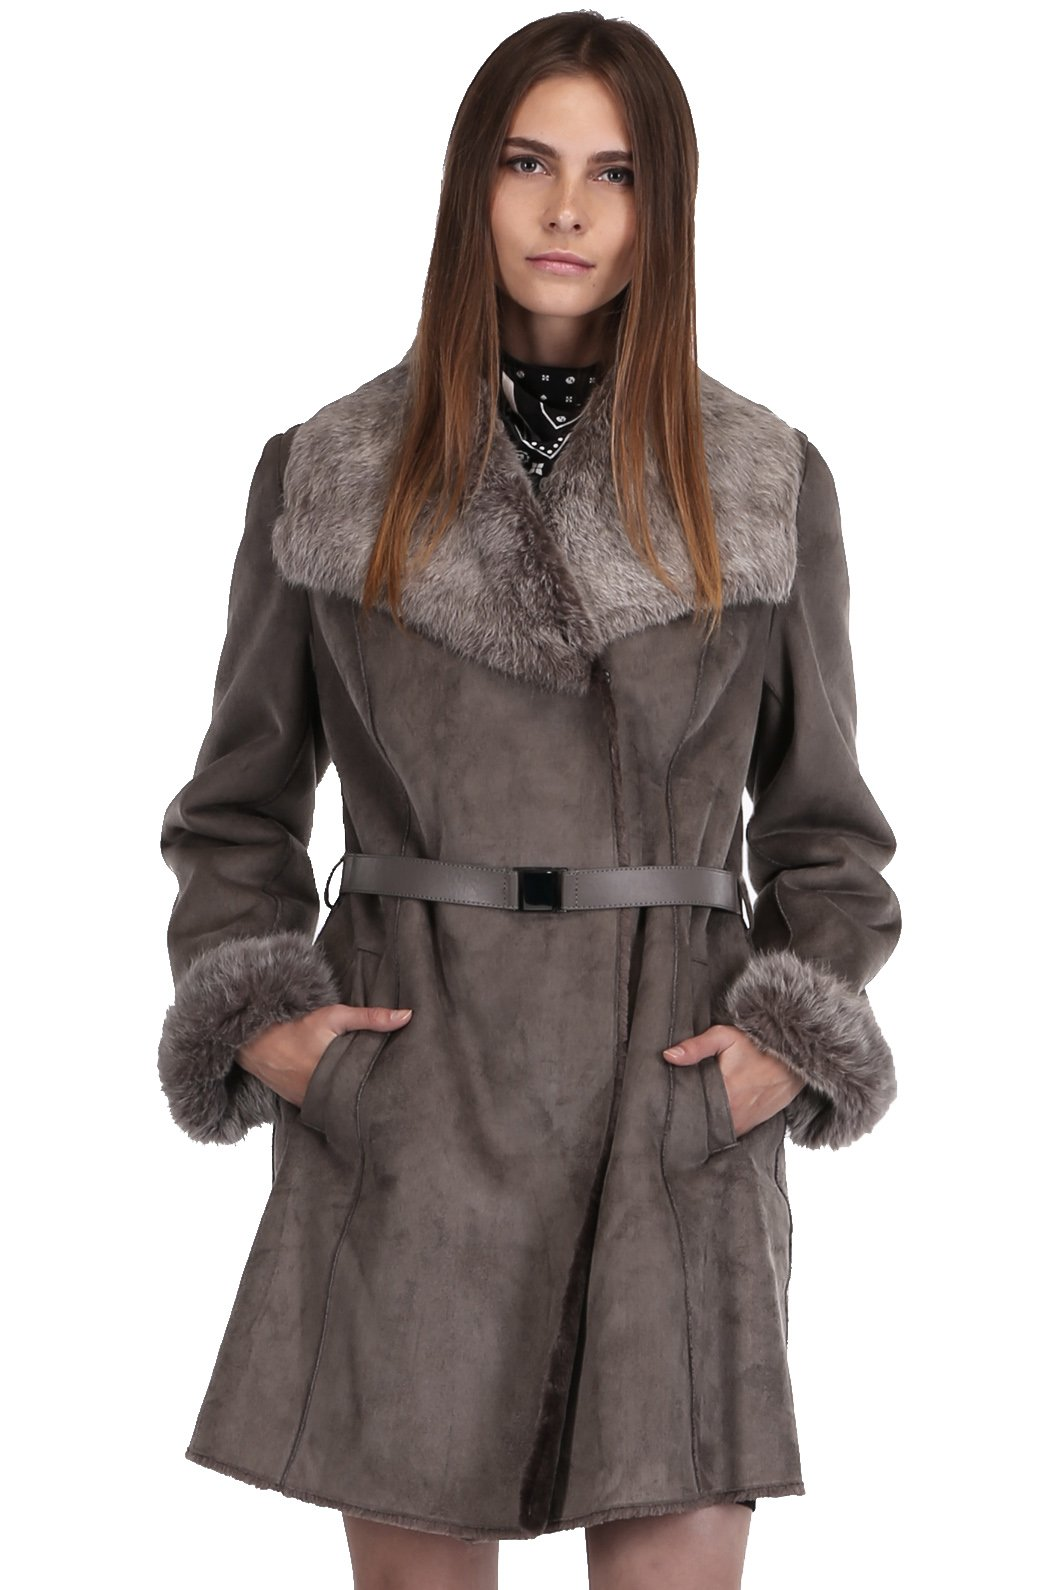 Ovonzo Women's Faux Shearling Coat with Real Rabbit Fur Collar and Cuffs Grey Size M